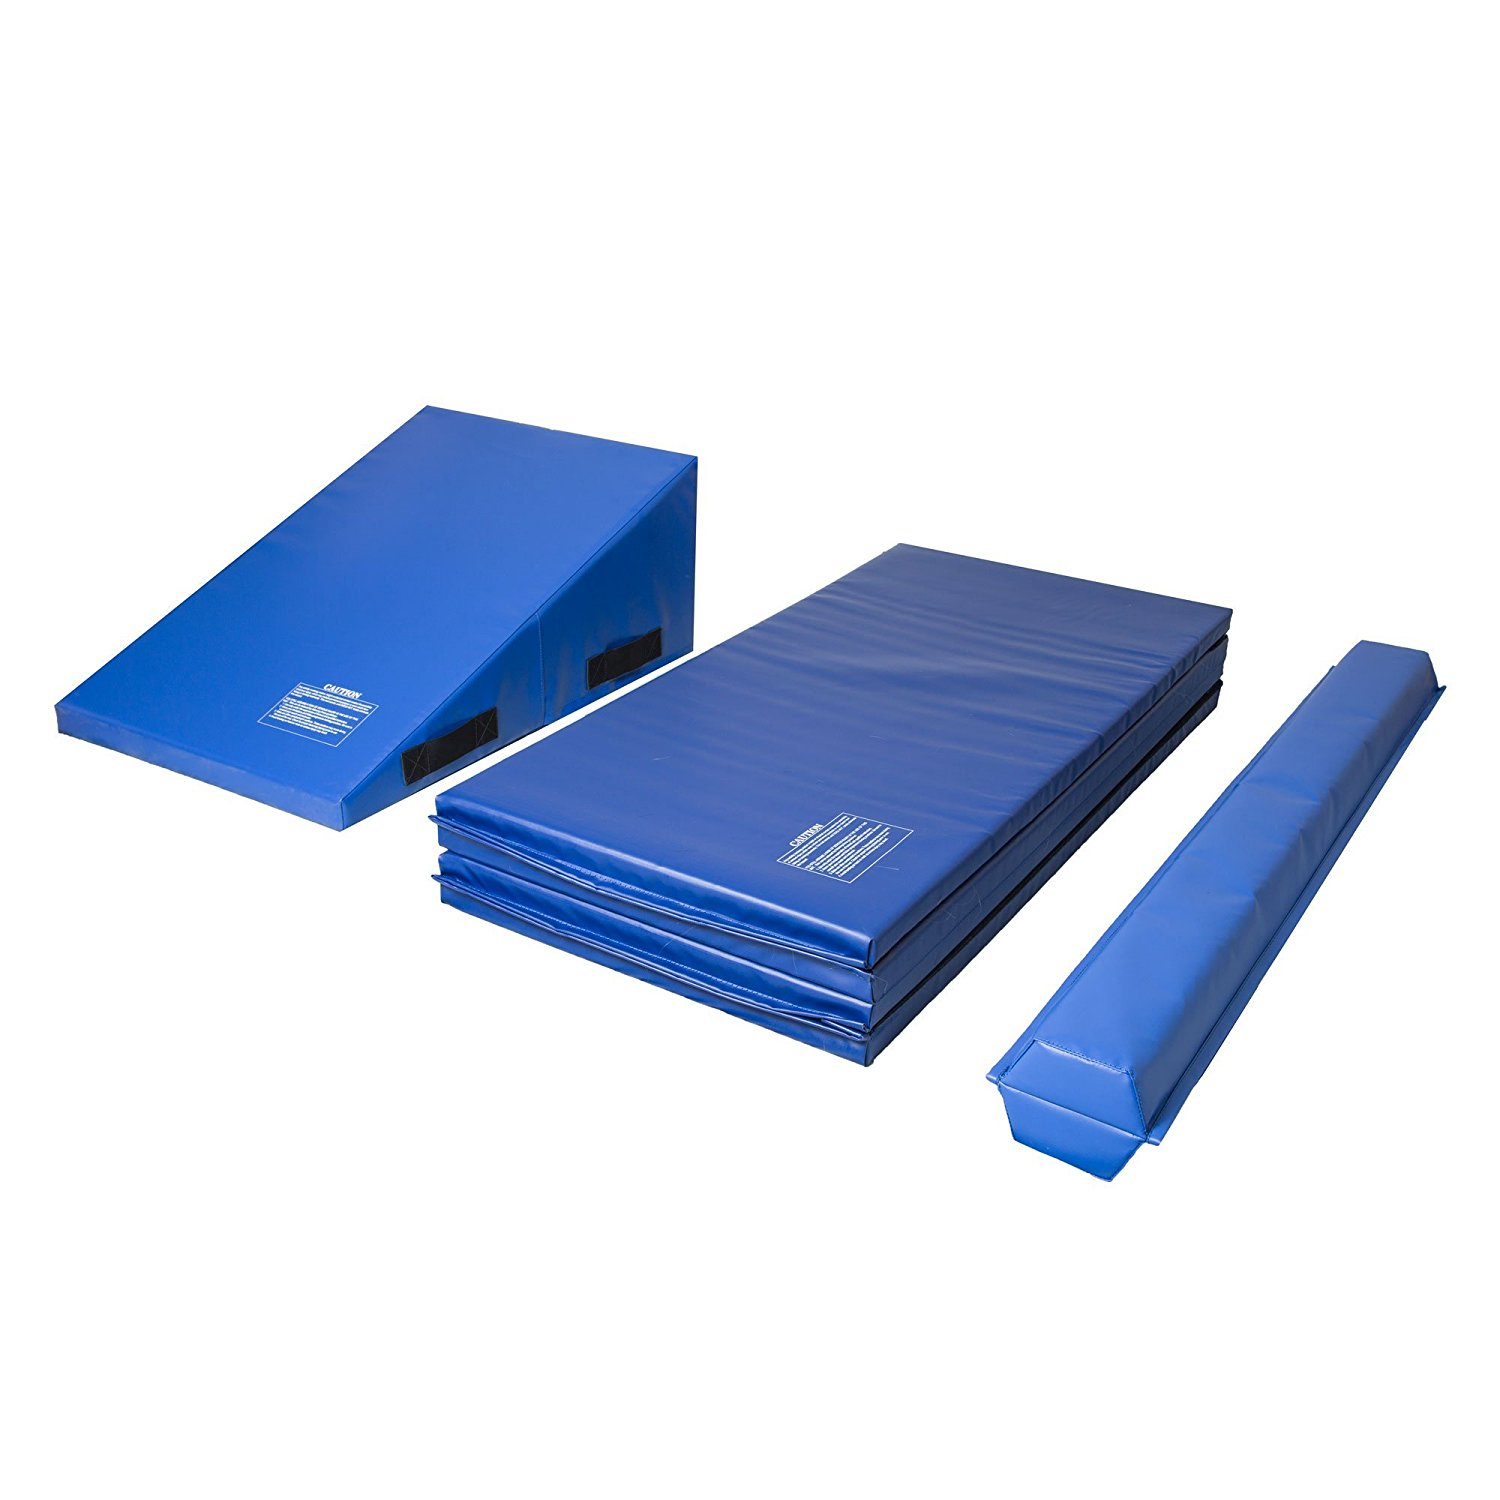 "IncStores Gymnastics Kit Includes Incline Mat (14""x24""x33""), Folding Mat (4'x8'x2"") and... by"